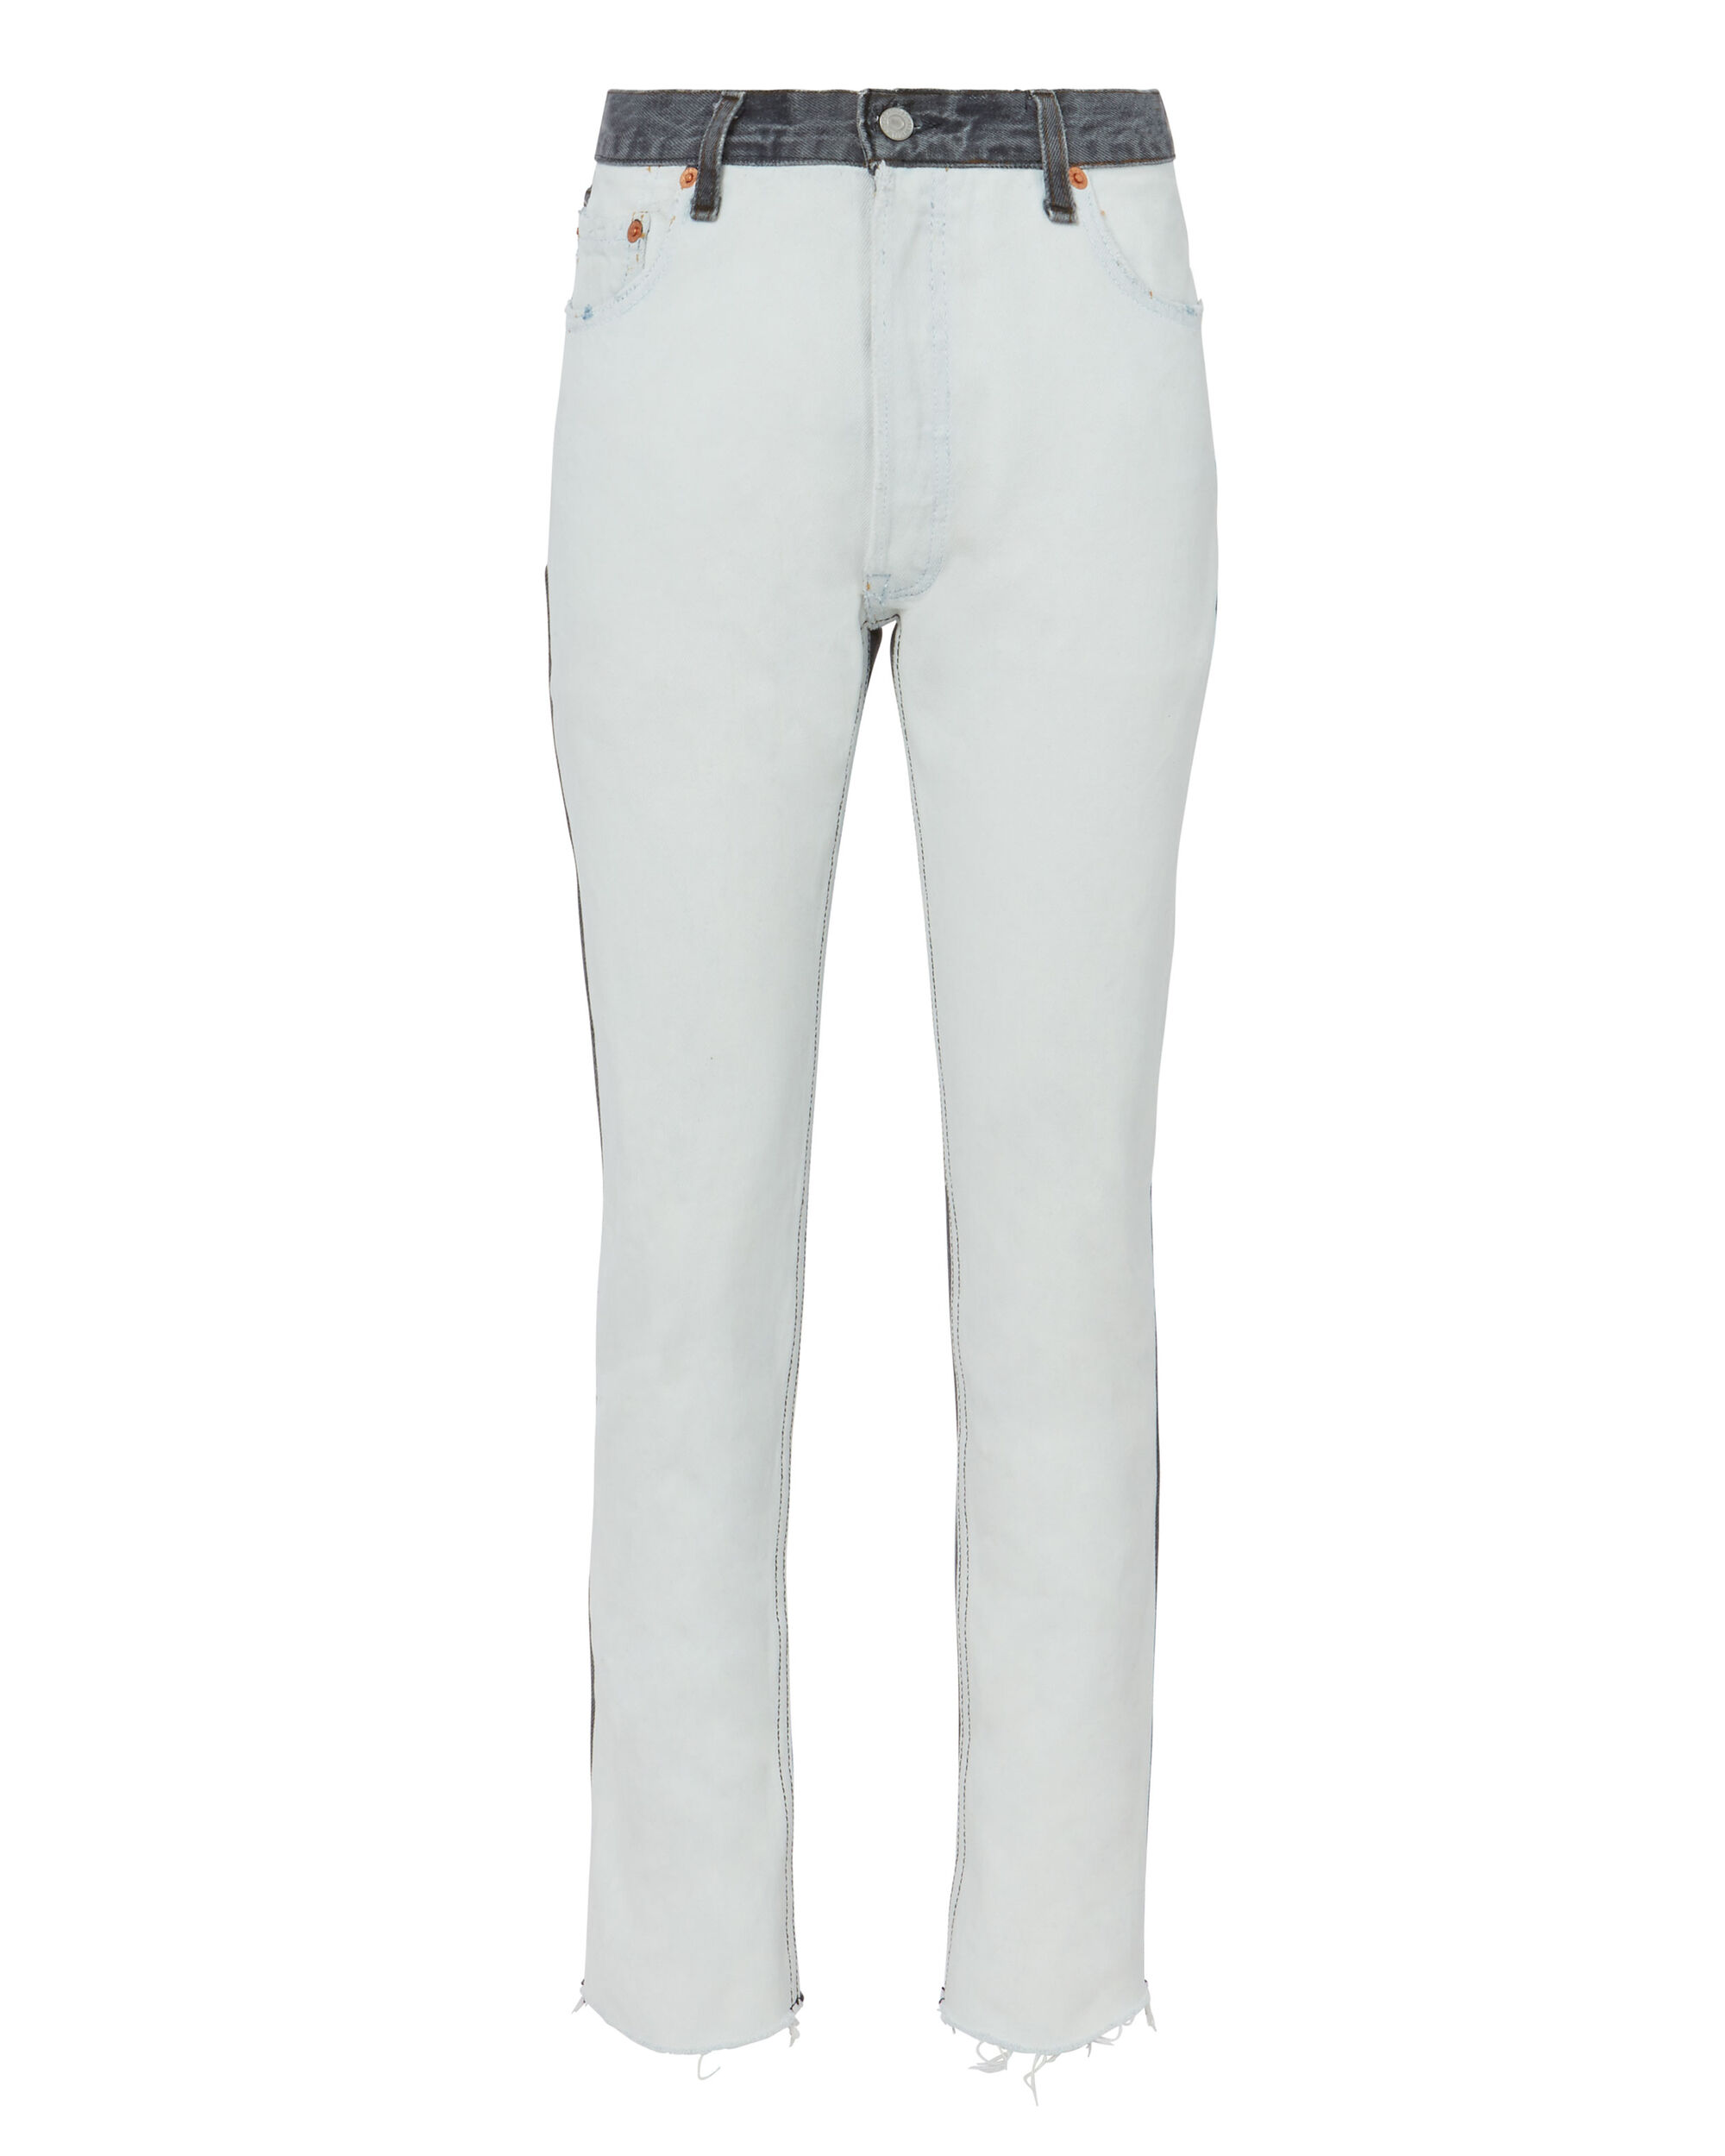 High-Rise Two-Tone Ankle Crop Jeans, BLK/WHT, hi-res